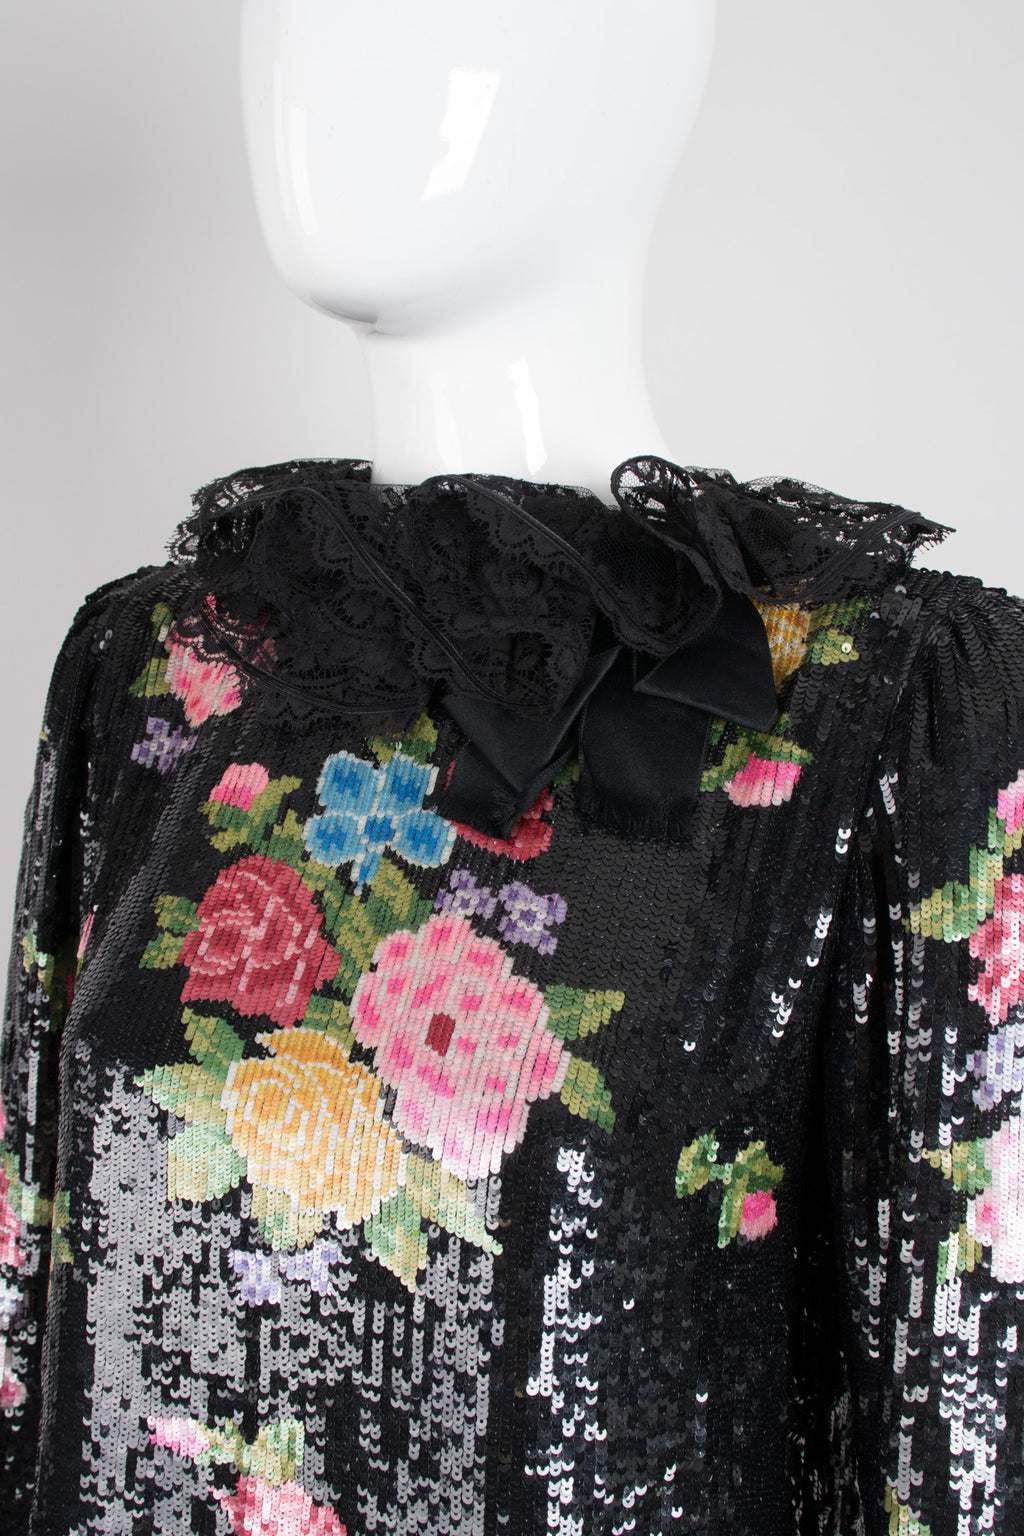 Oscar de la Renta Floral Sequined Needlepoint Ruffle Top